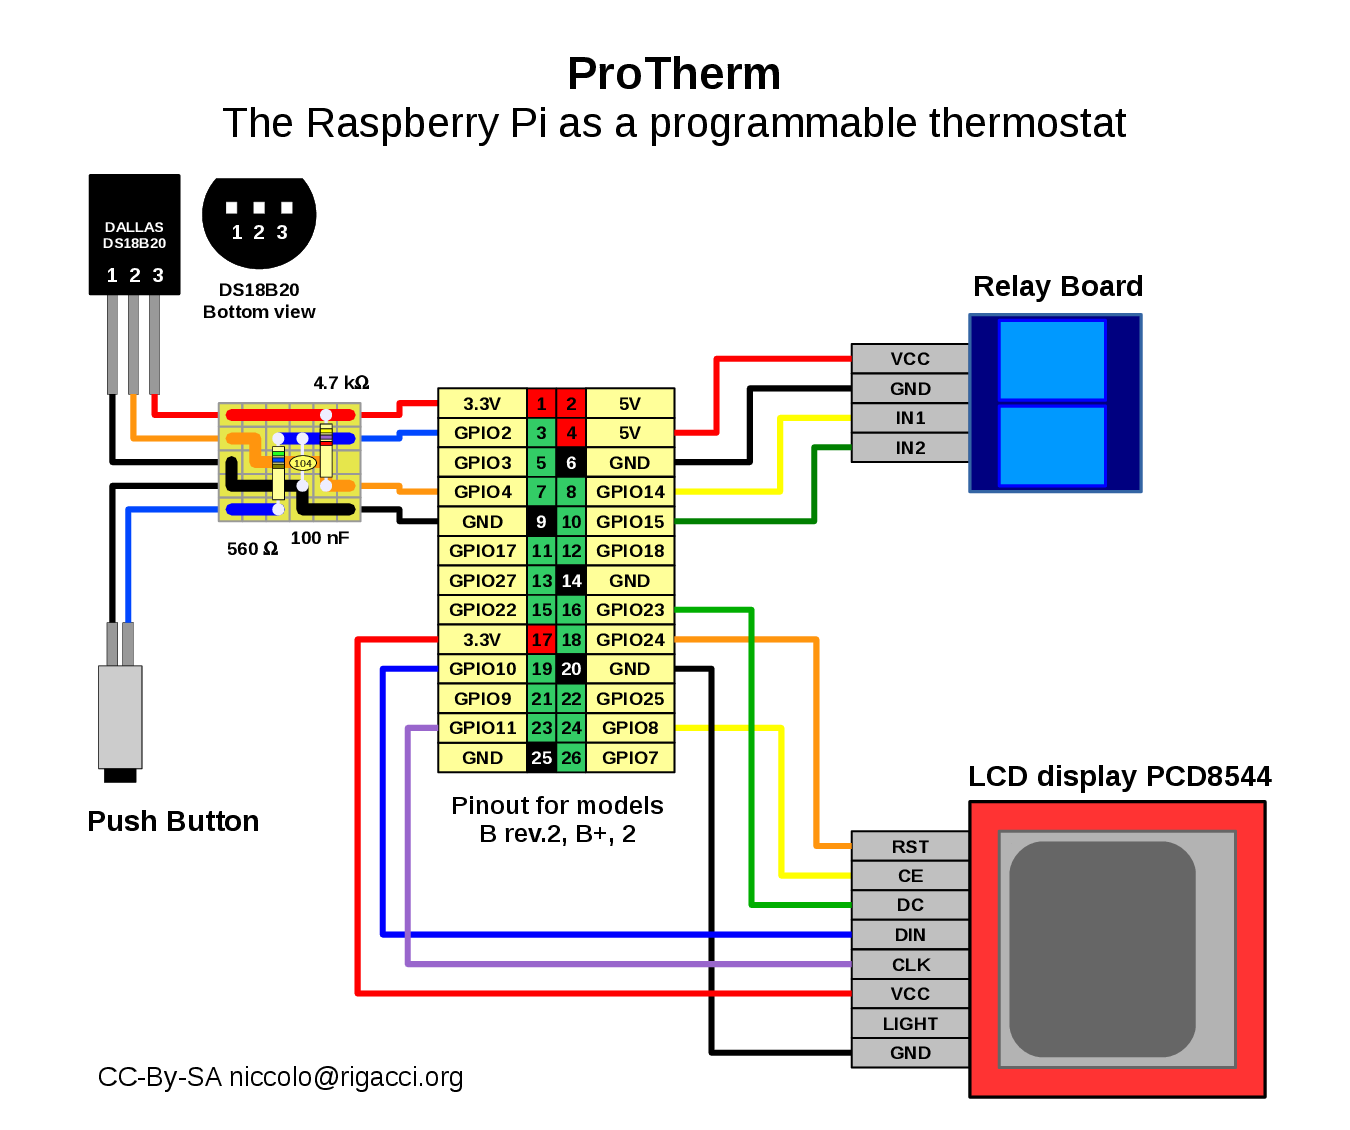 coleman forced air furnace wiring diagram with Electric Furnace Thermostat Wiring on Heil Furnace Filter Location also 63472675976106949 moreover Heil Furnace Filter Location besides Dgaa090bdtb Coleman Gas Furnace Parts also Honeywell Oil Furnace Wiring Diagrams.